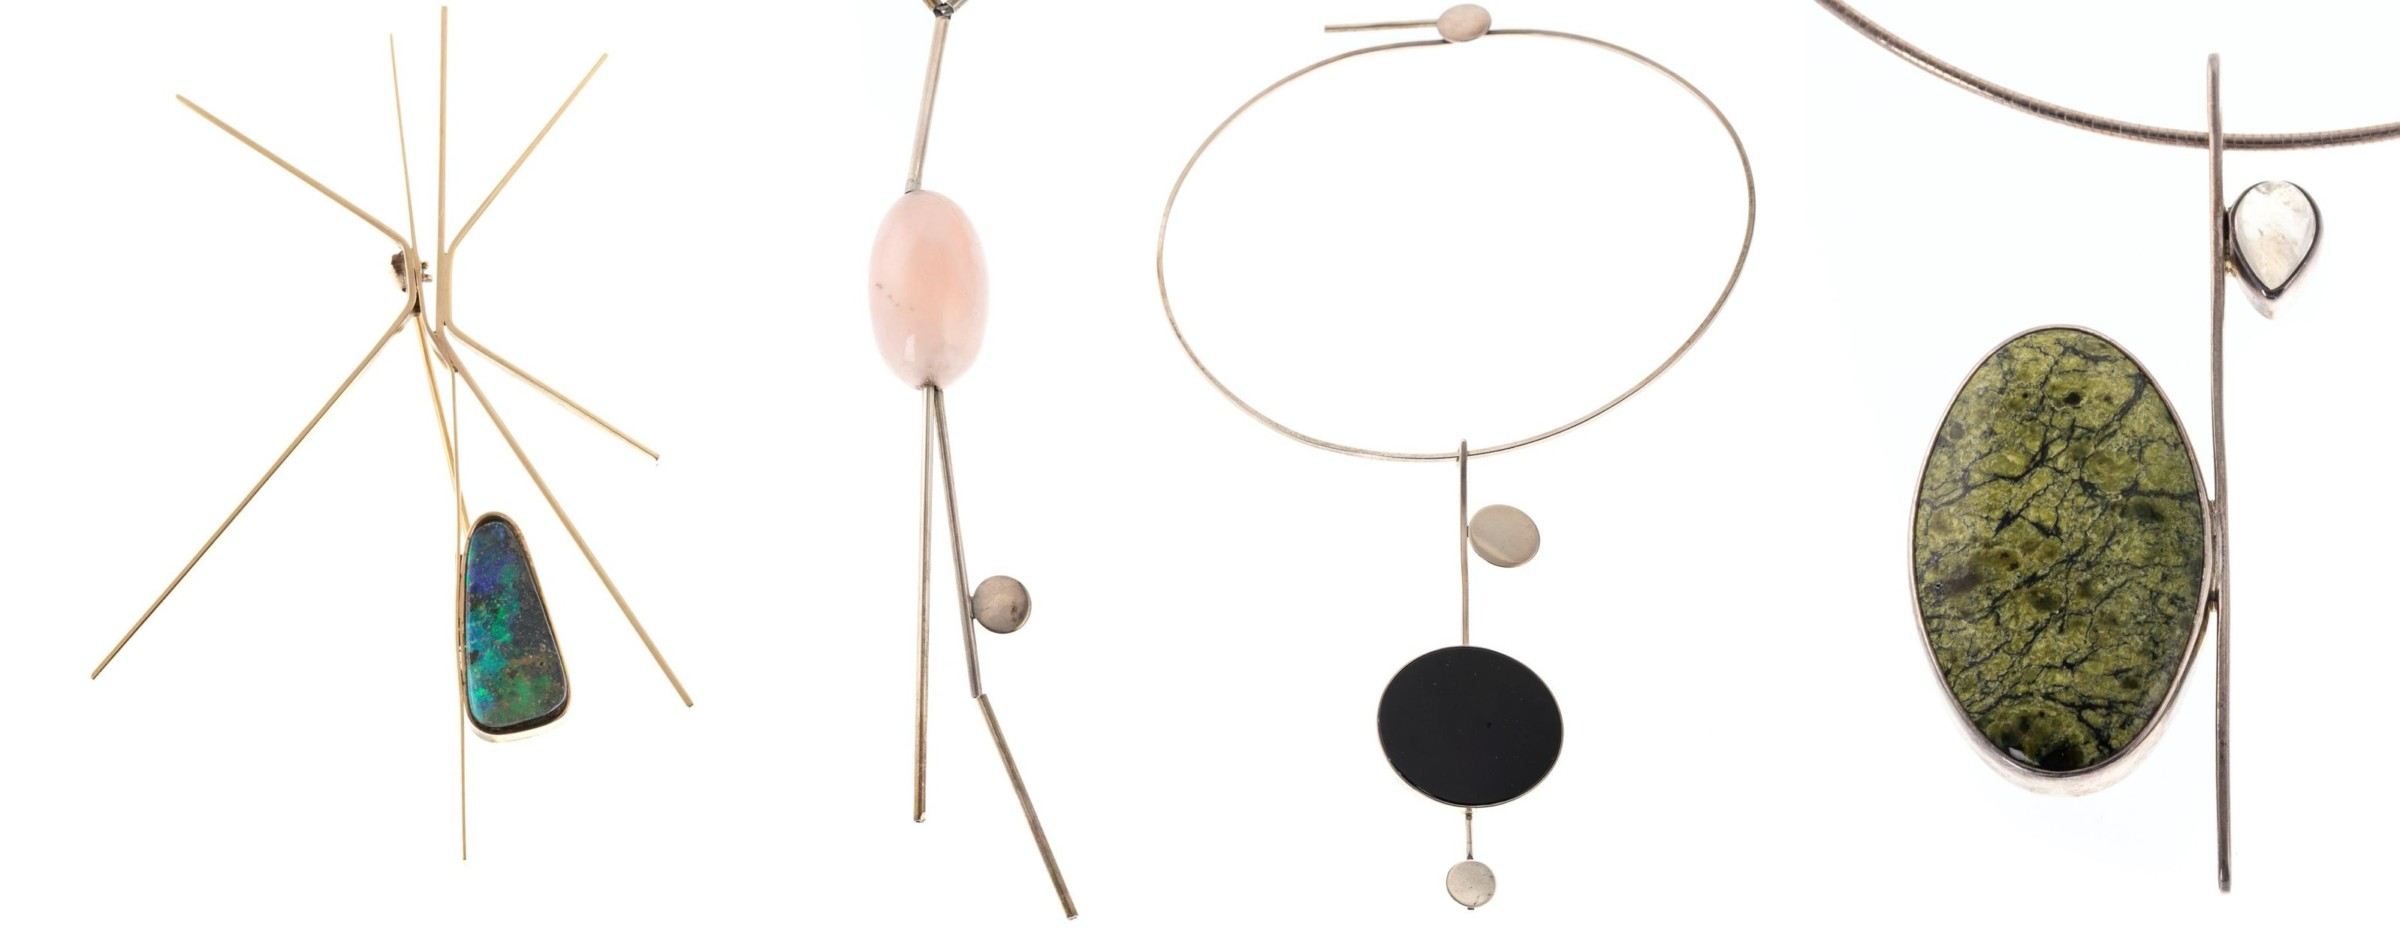 Modernist Masterpieces by Baltimore Jeweler Betty Cooke